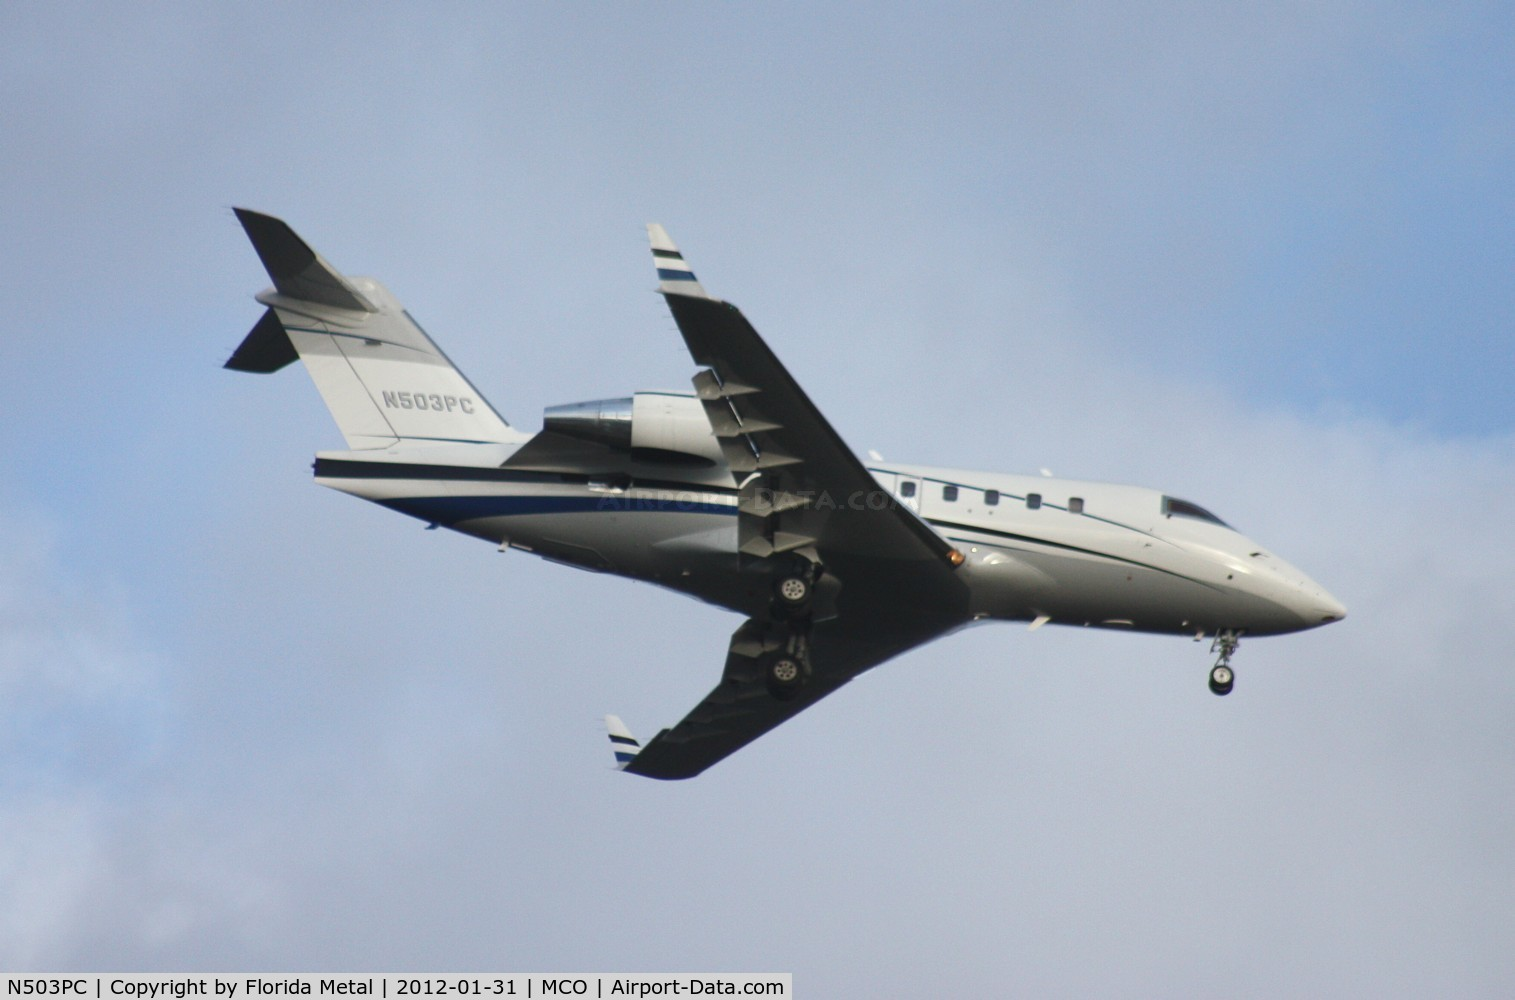 N503PC, 2001 Bombardier Challenger 604 (CL-600-2B16) C/N 5503, Challenger 601